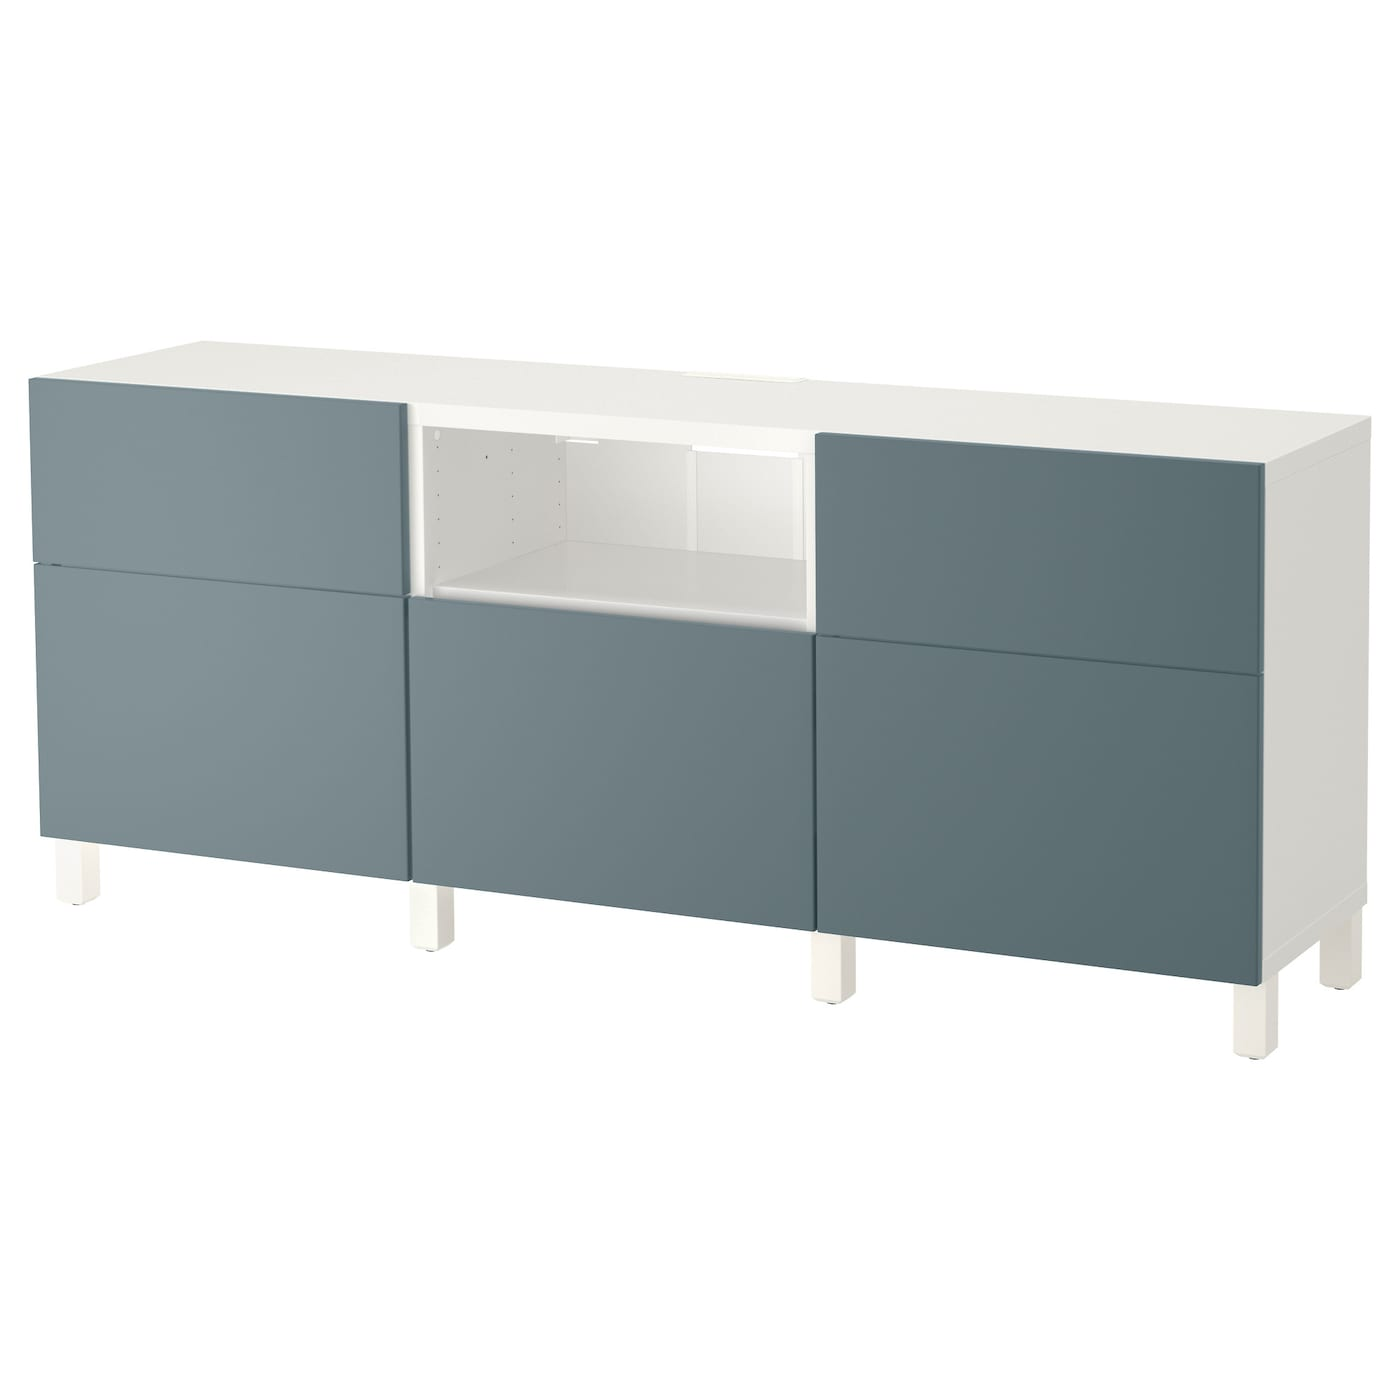 best banc tv blanc valviken gris turquoise 180 x 40 x 74 cm ikea. Black Bedroom Furniture Sets. Home Design Ideas